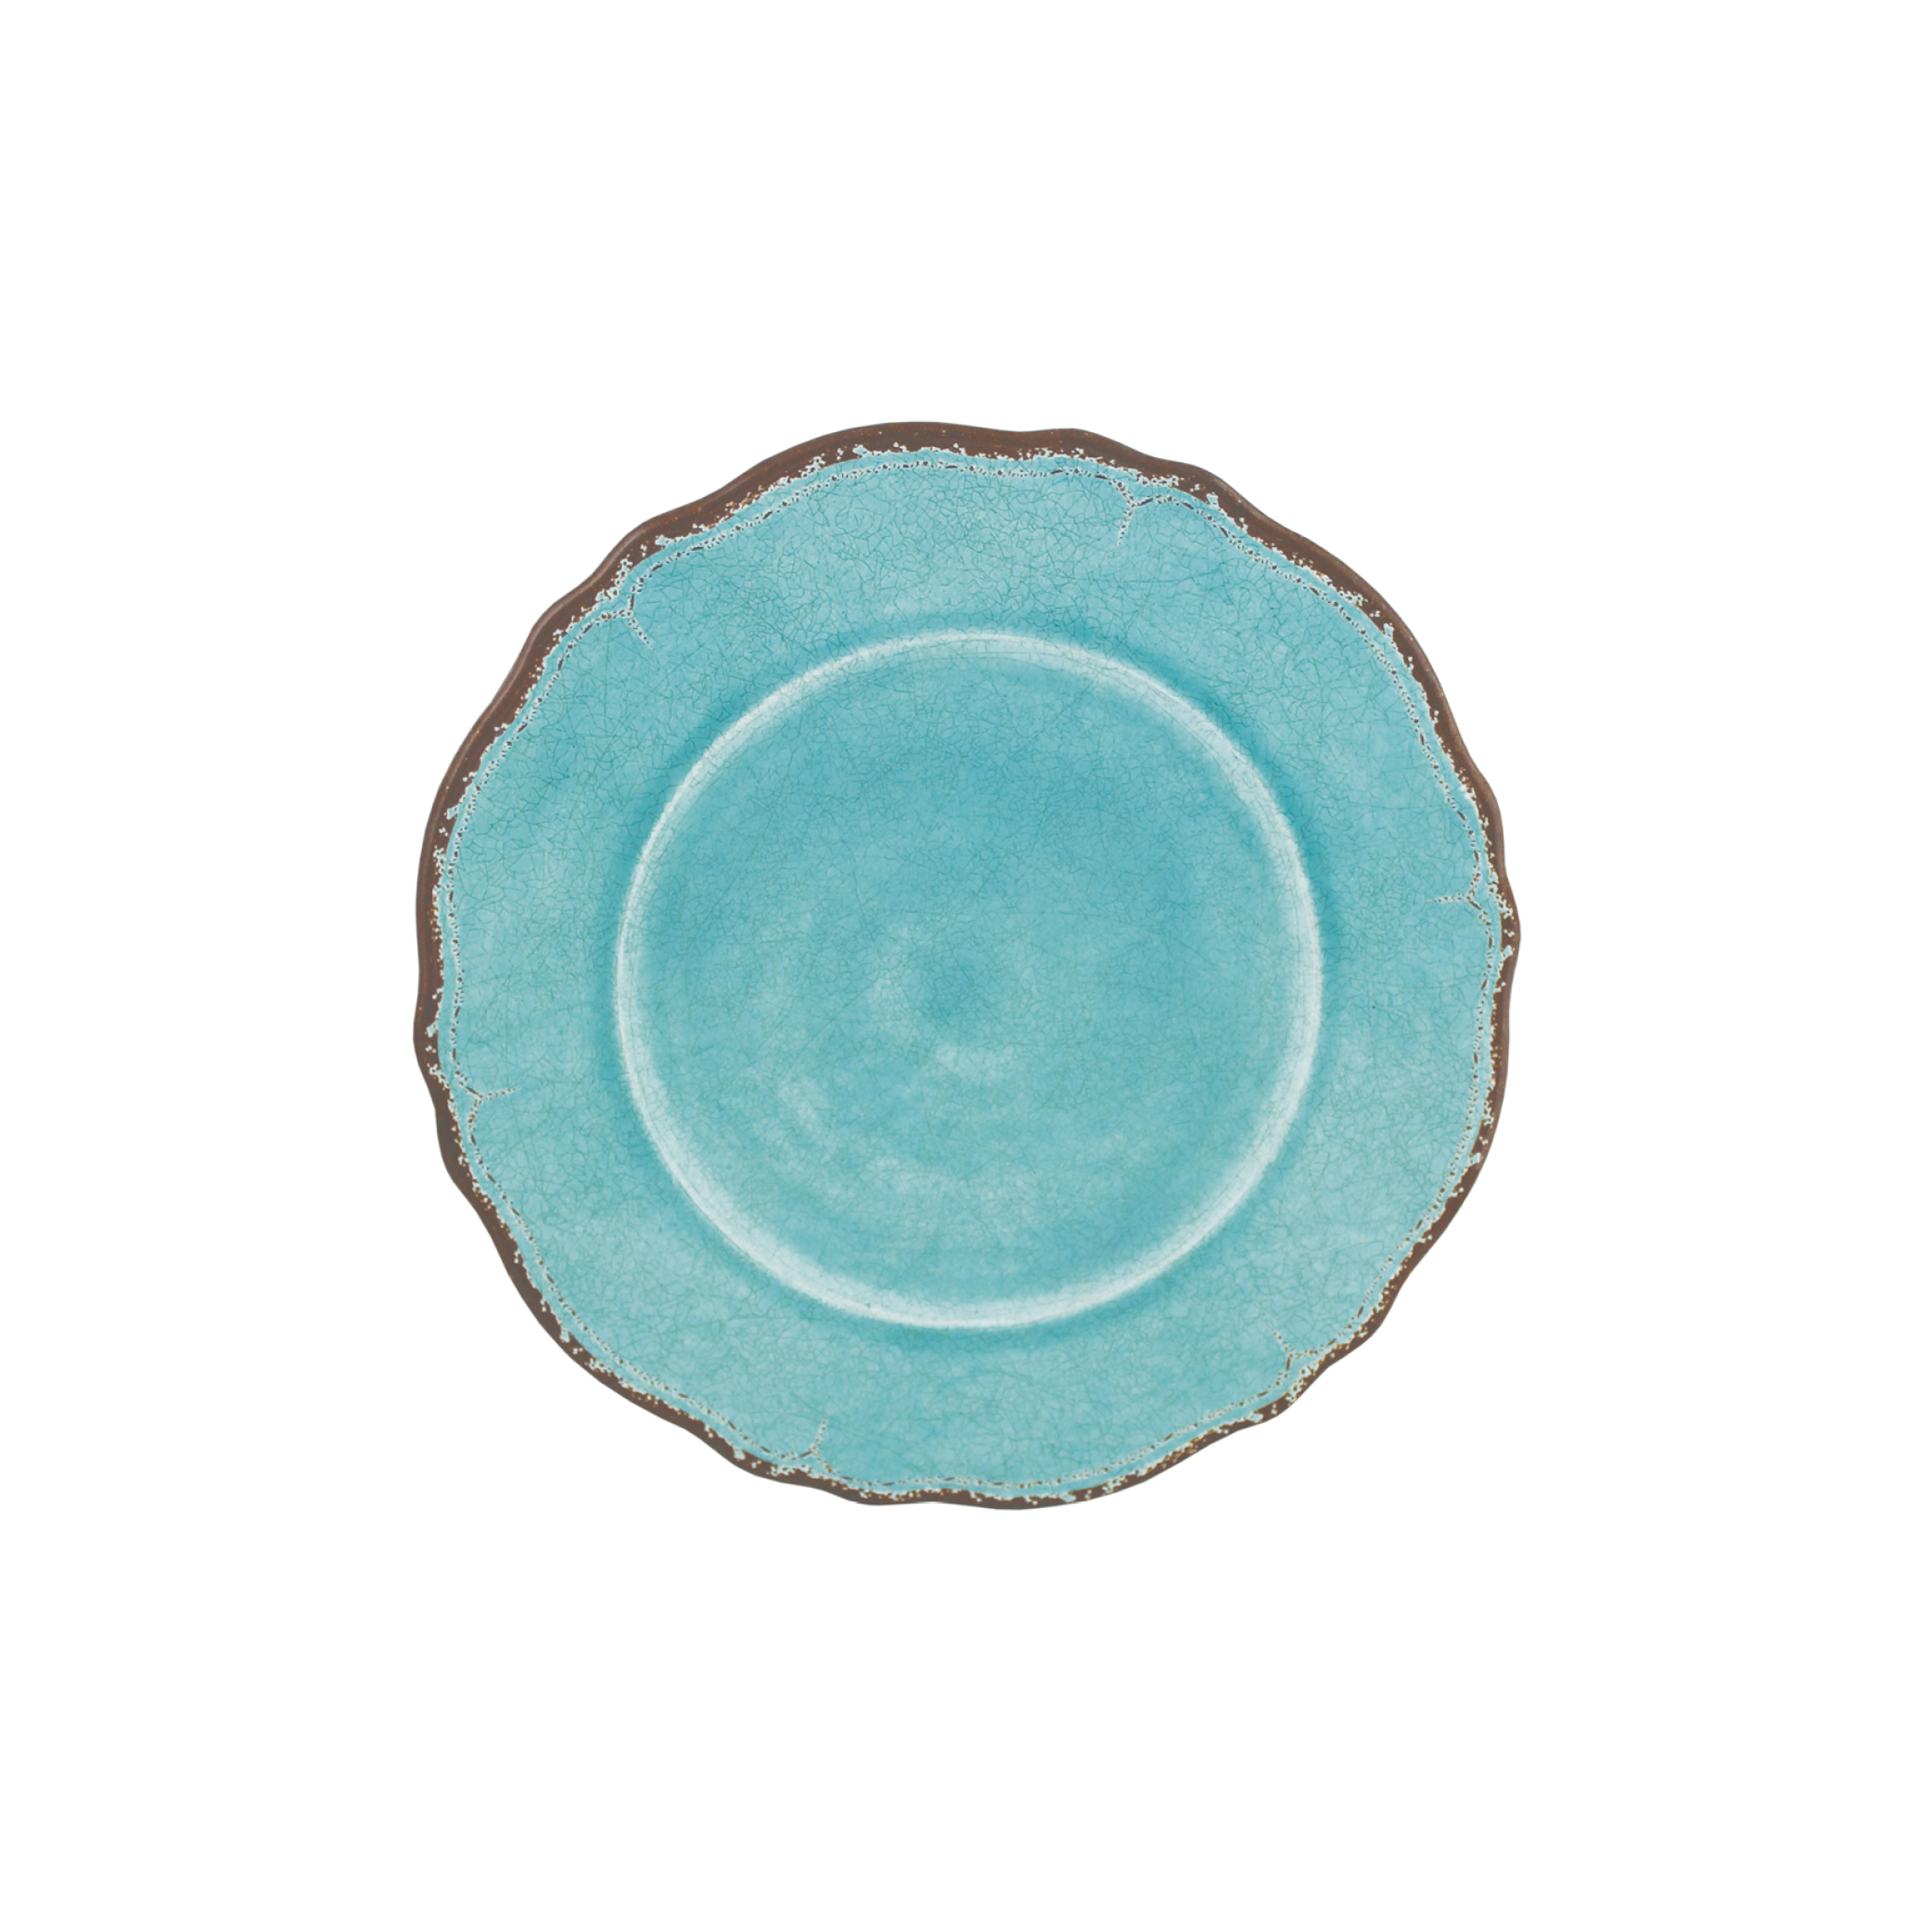 Antiqua Turquoise Dinner Plate $17.95   Wants 8 Has 8 Needs 0